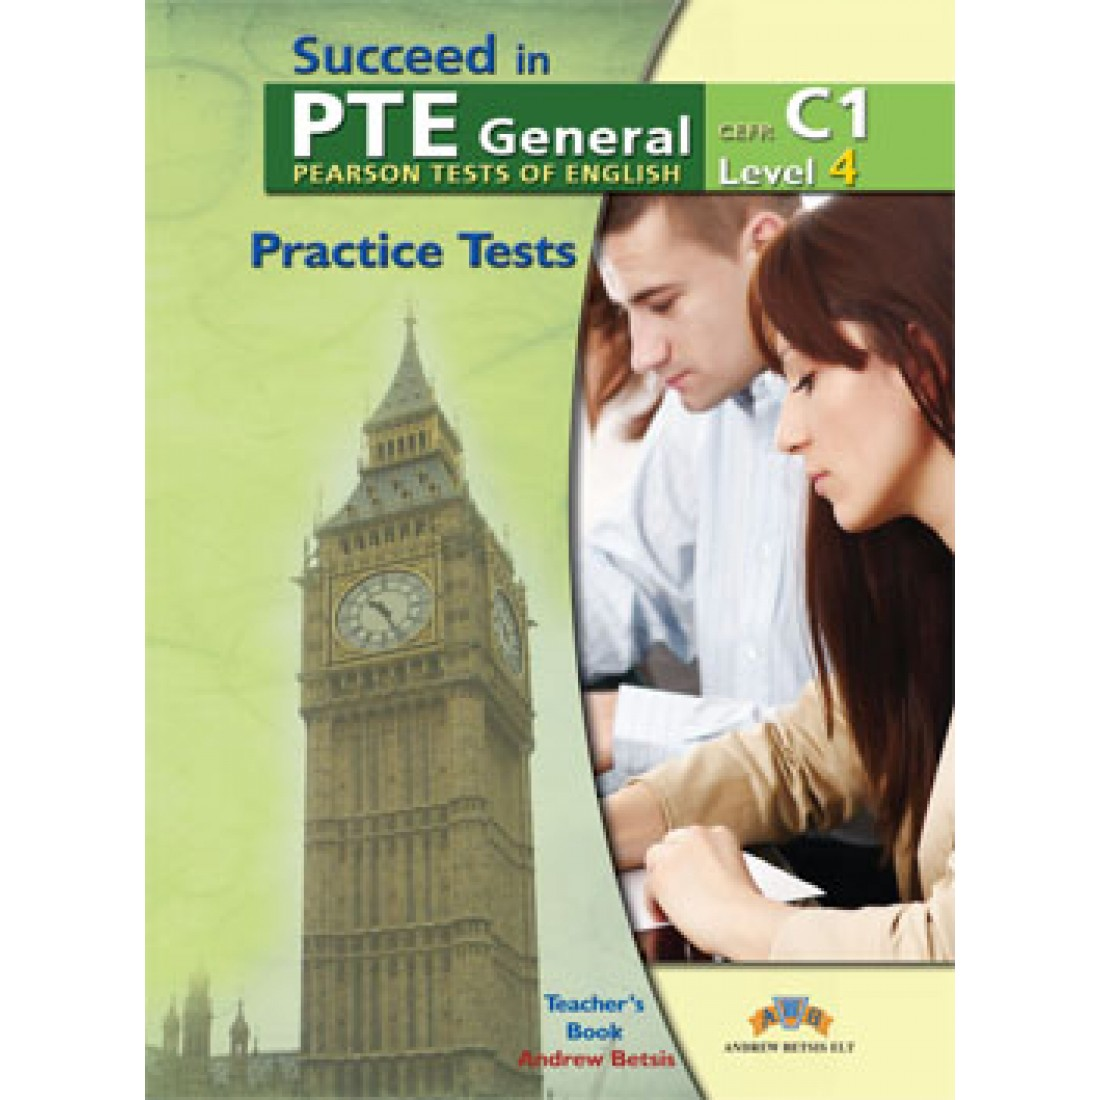 pearson test general english c1 book